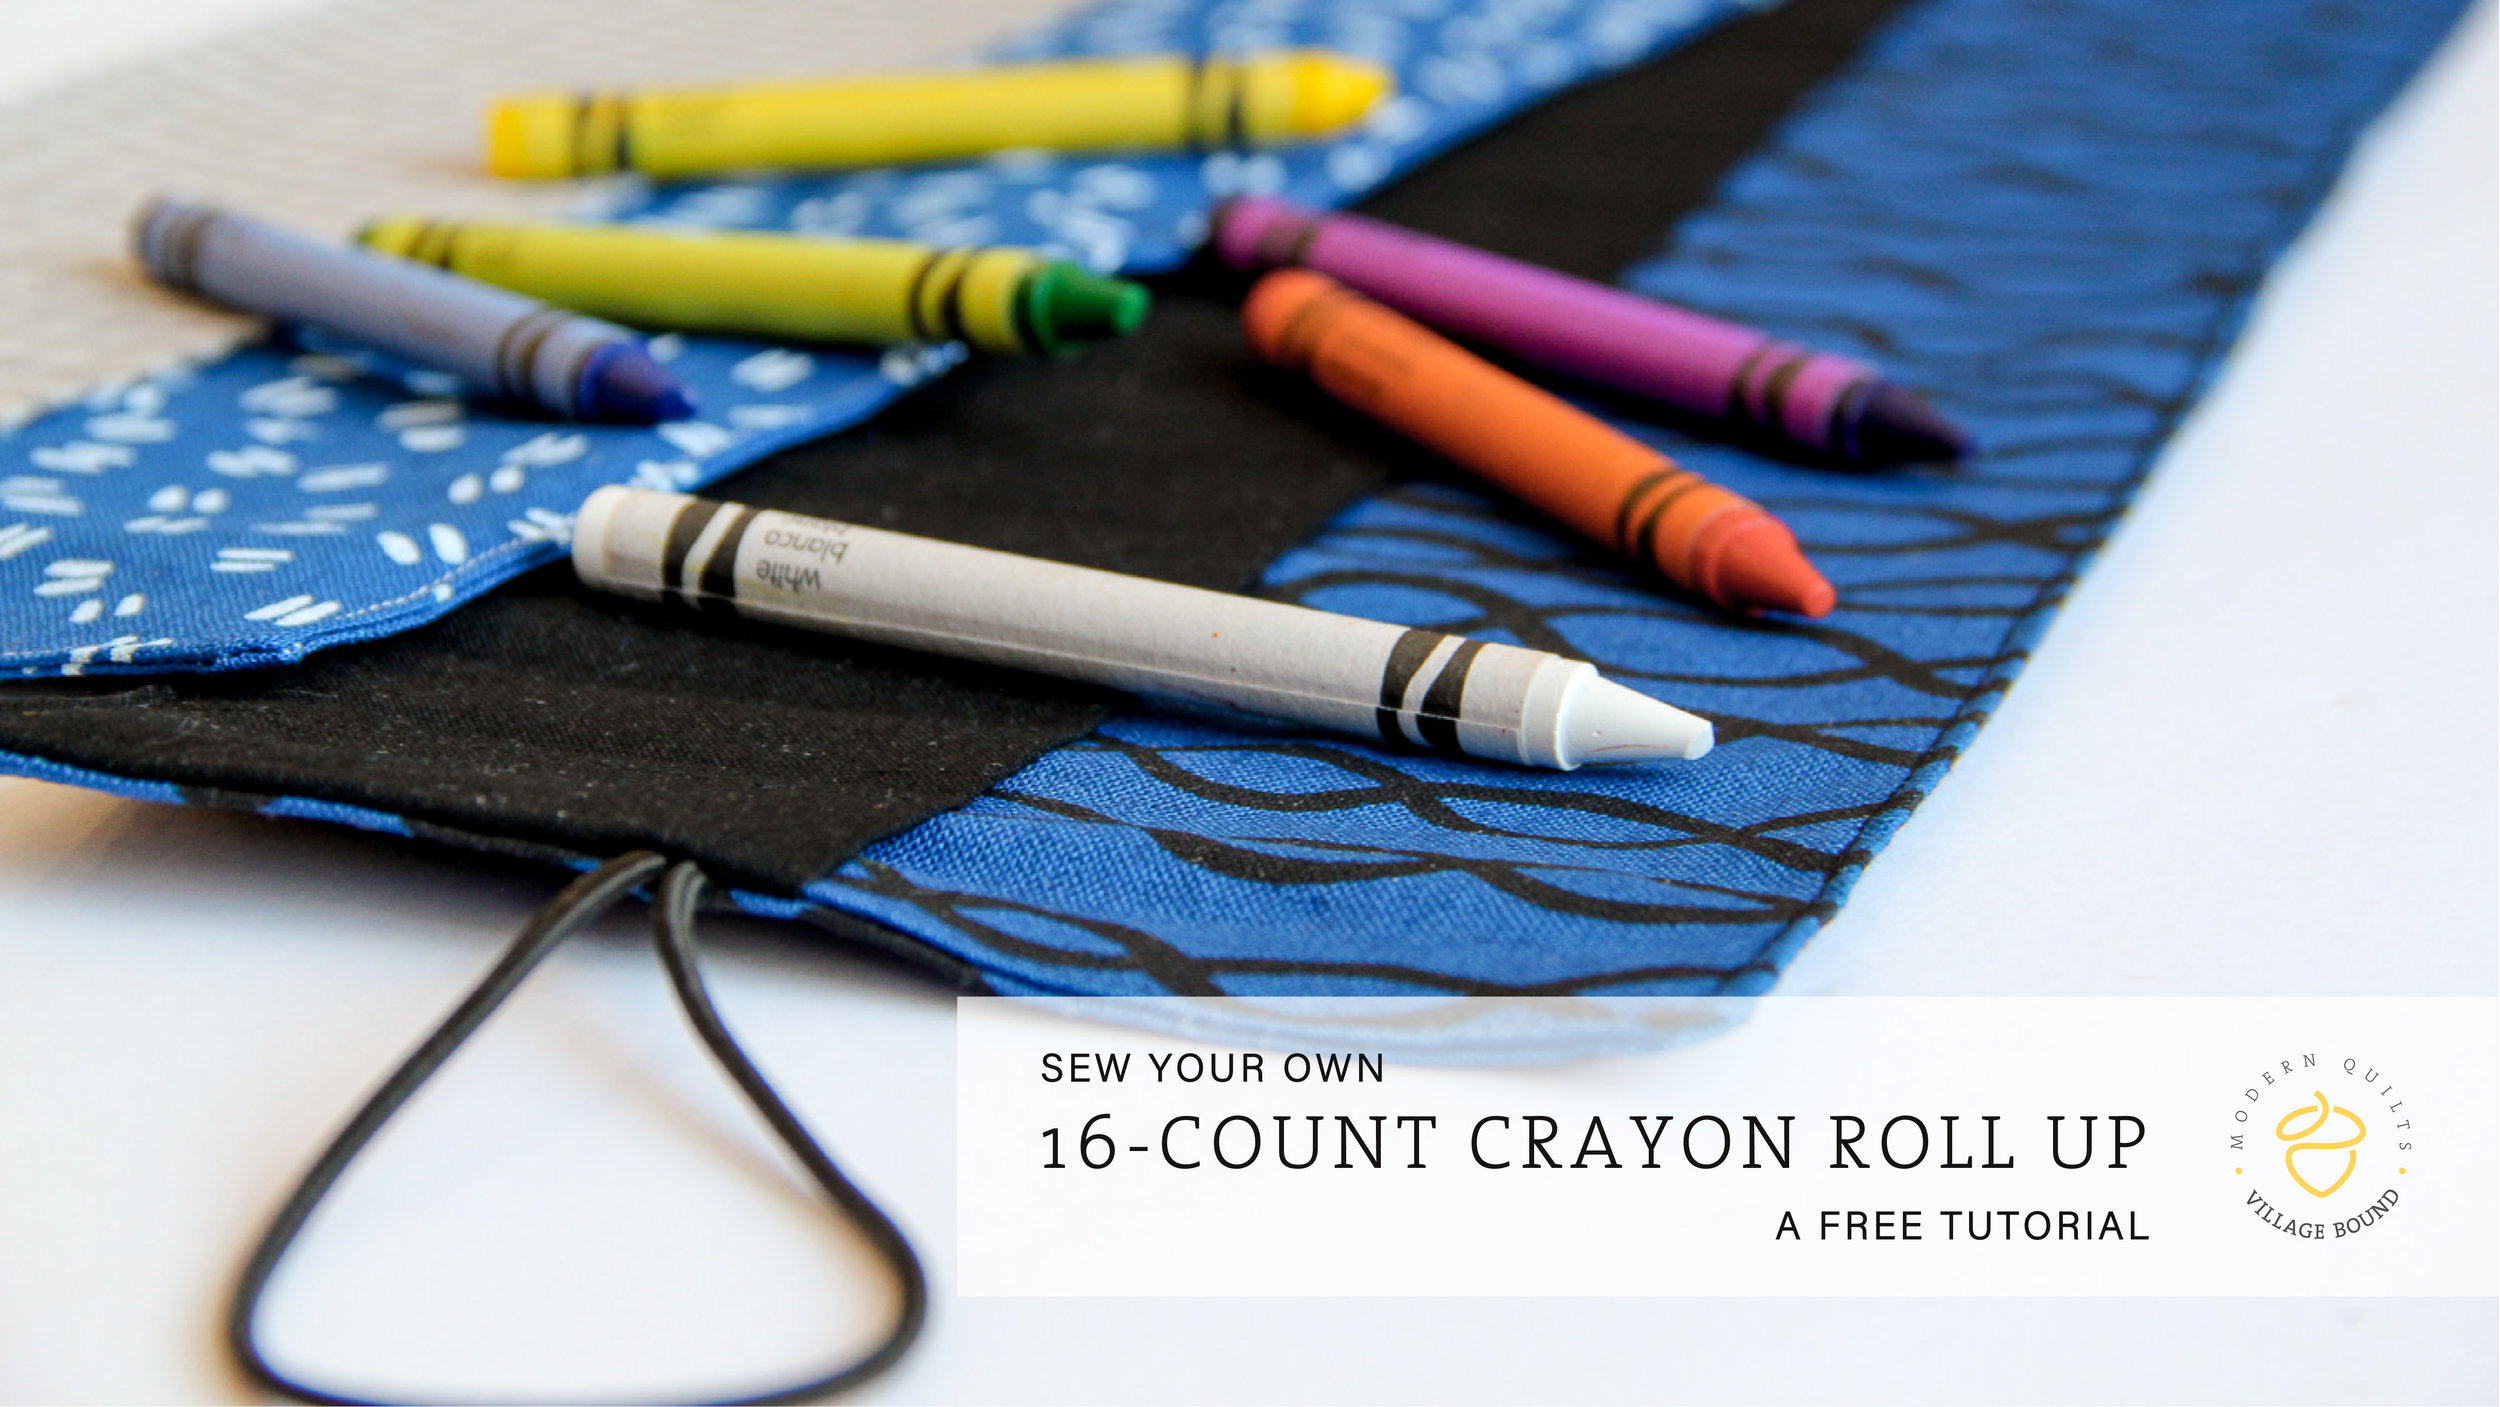 Crayon Roll Up: a free tutorial by Tiffany Horn, villageboundquilts.com